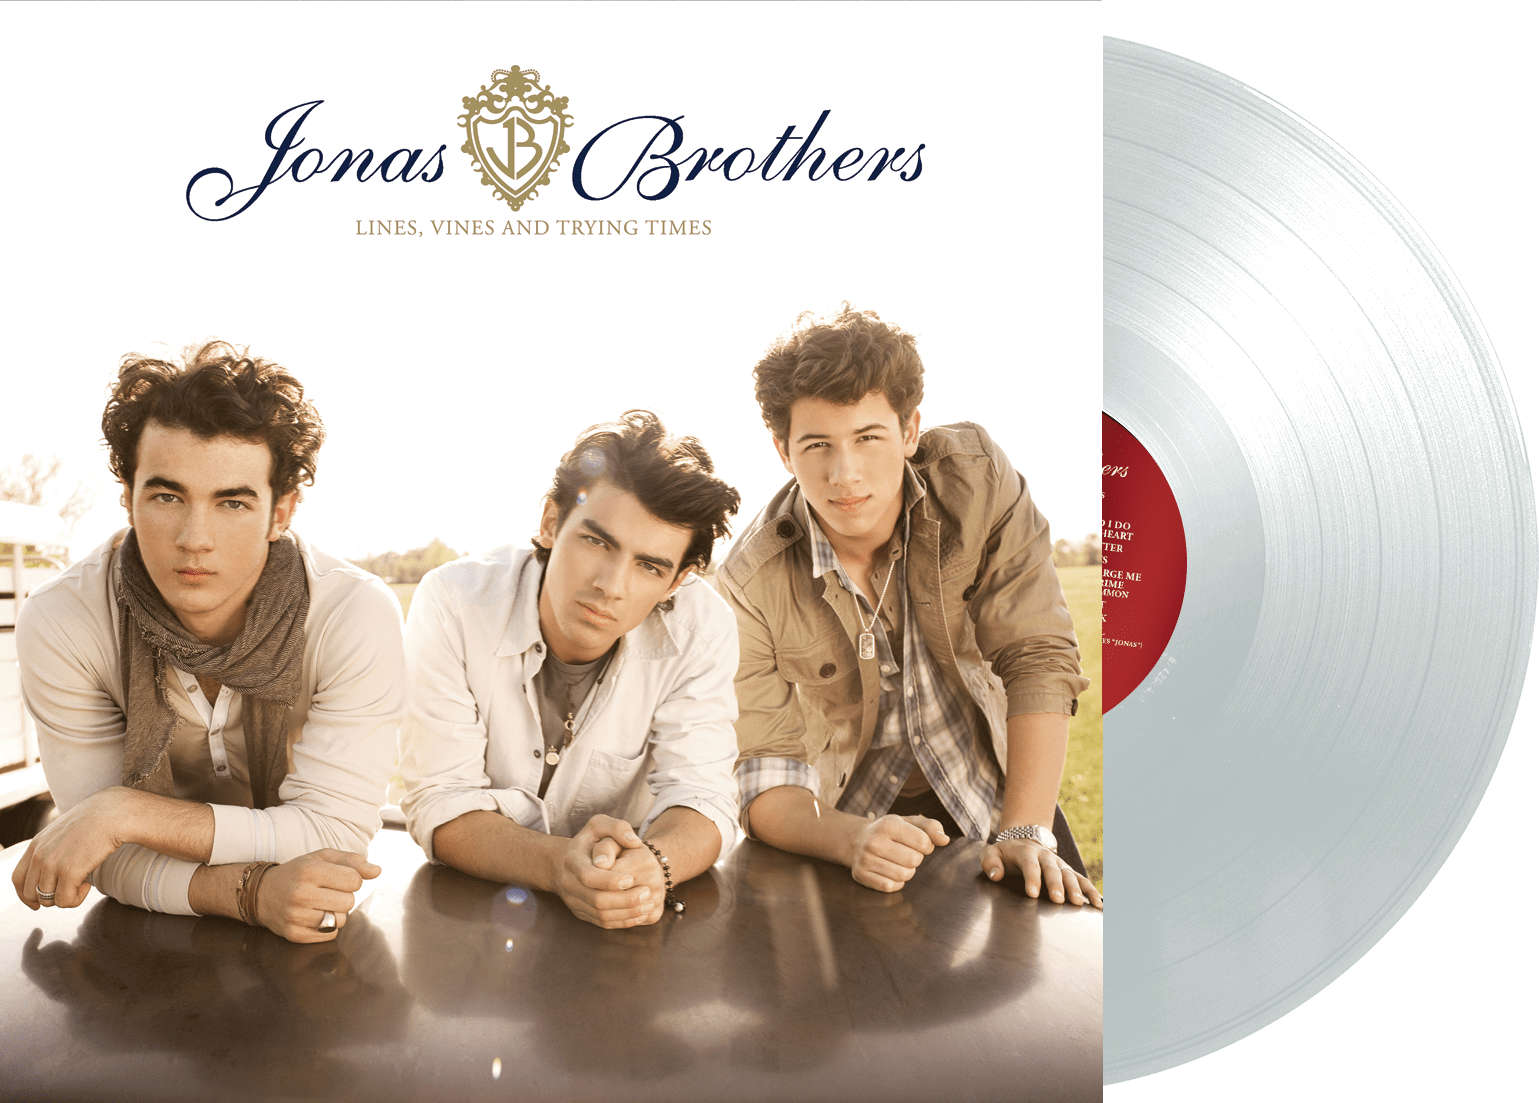 Jonas Brothers - Lines, Vines and Trying Times LP (CLEAR vinyl)